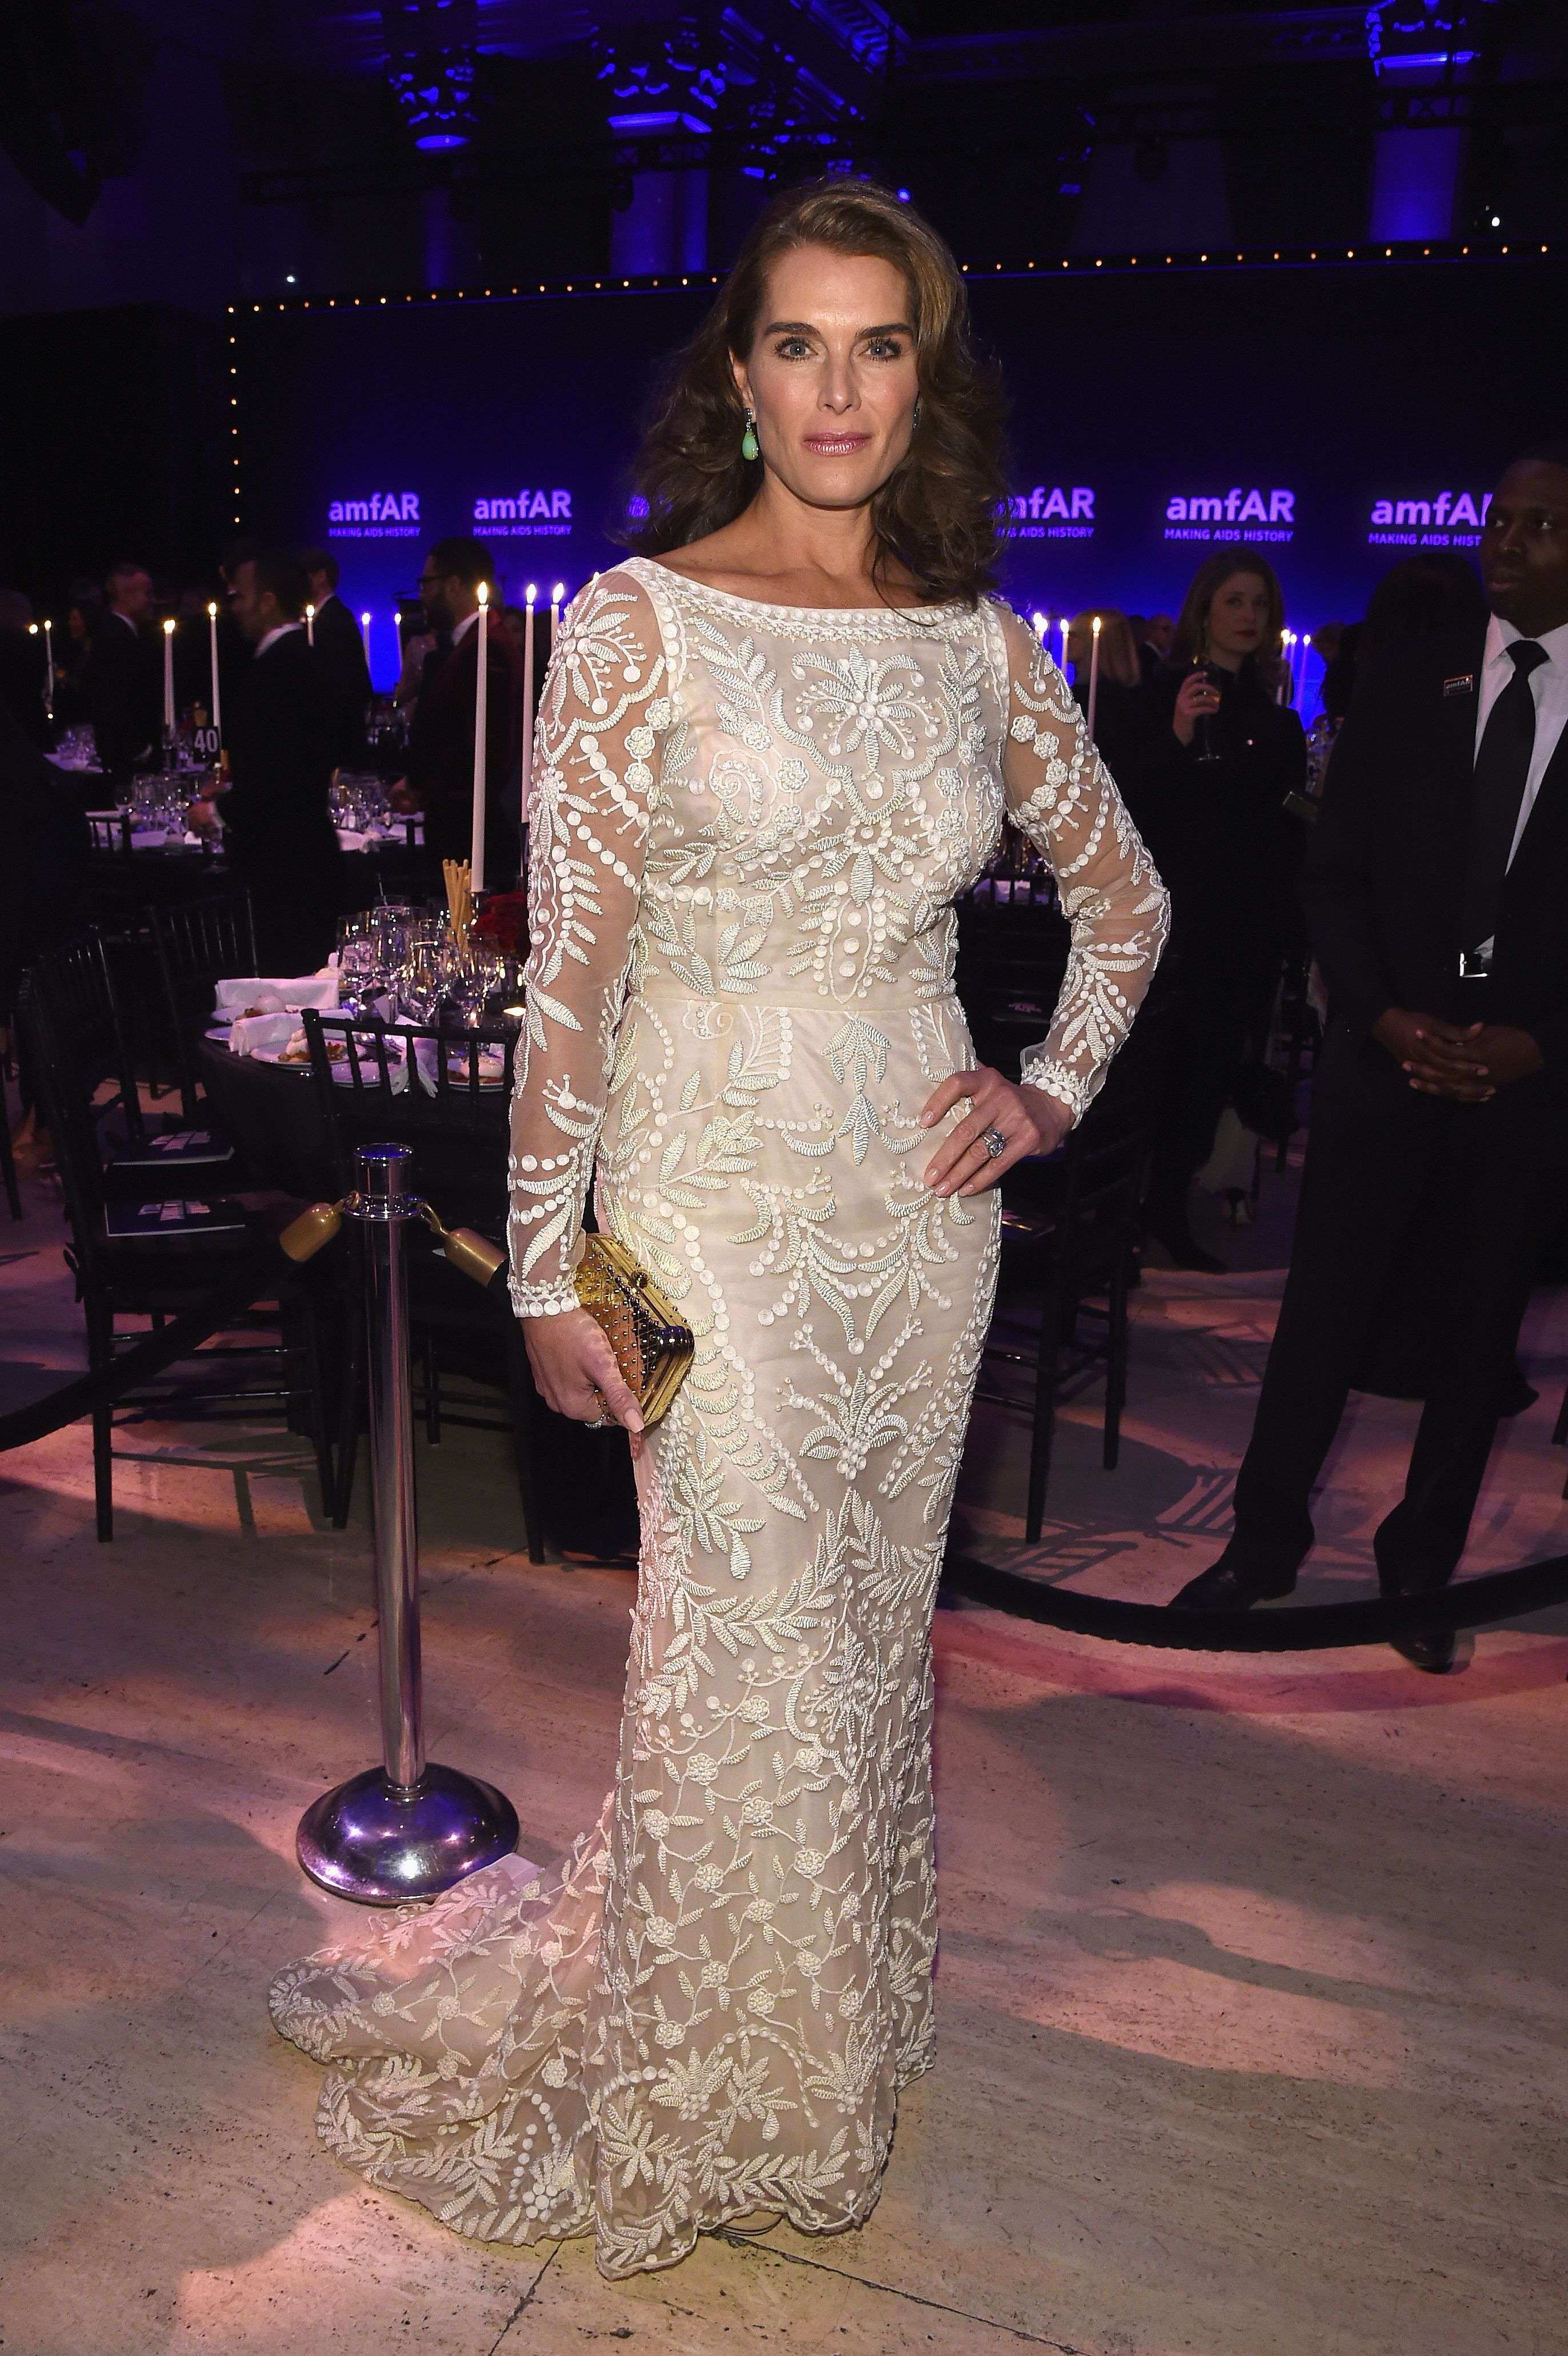 See all the looks from the amfar new york gala swanky dous